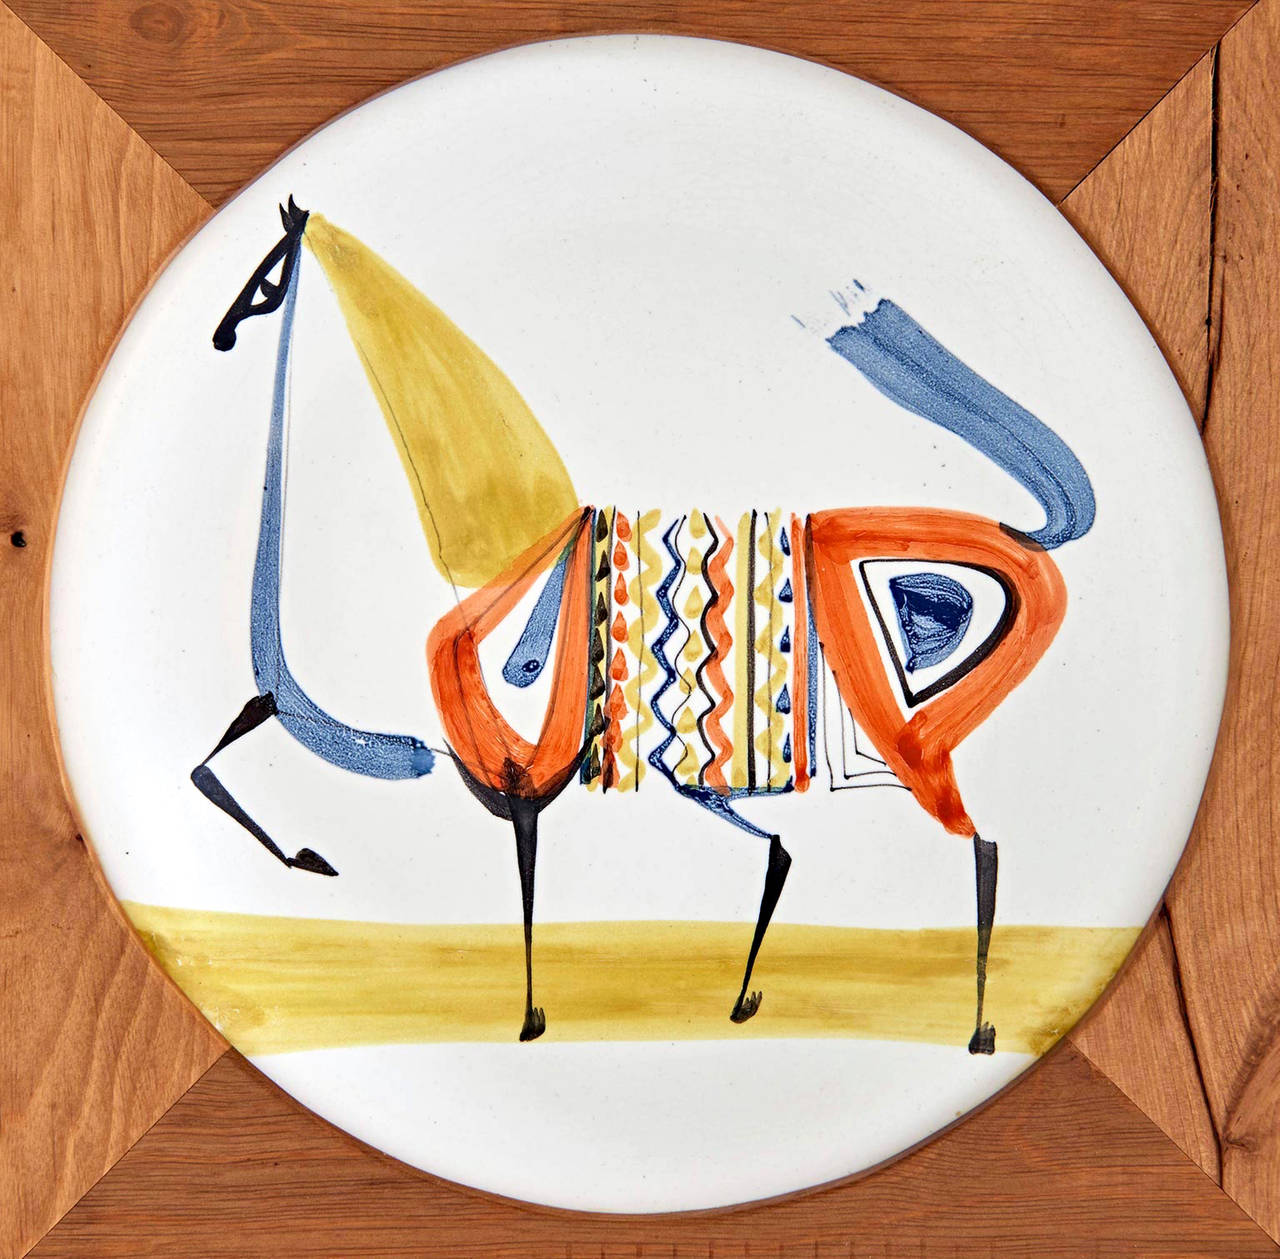 Glazed Plate by Roger Capron For Sale